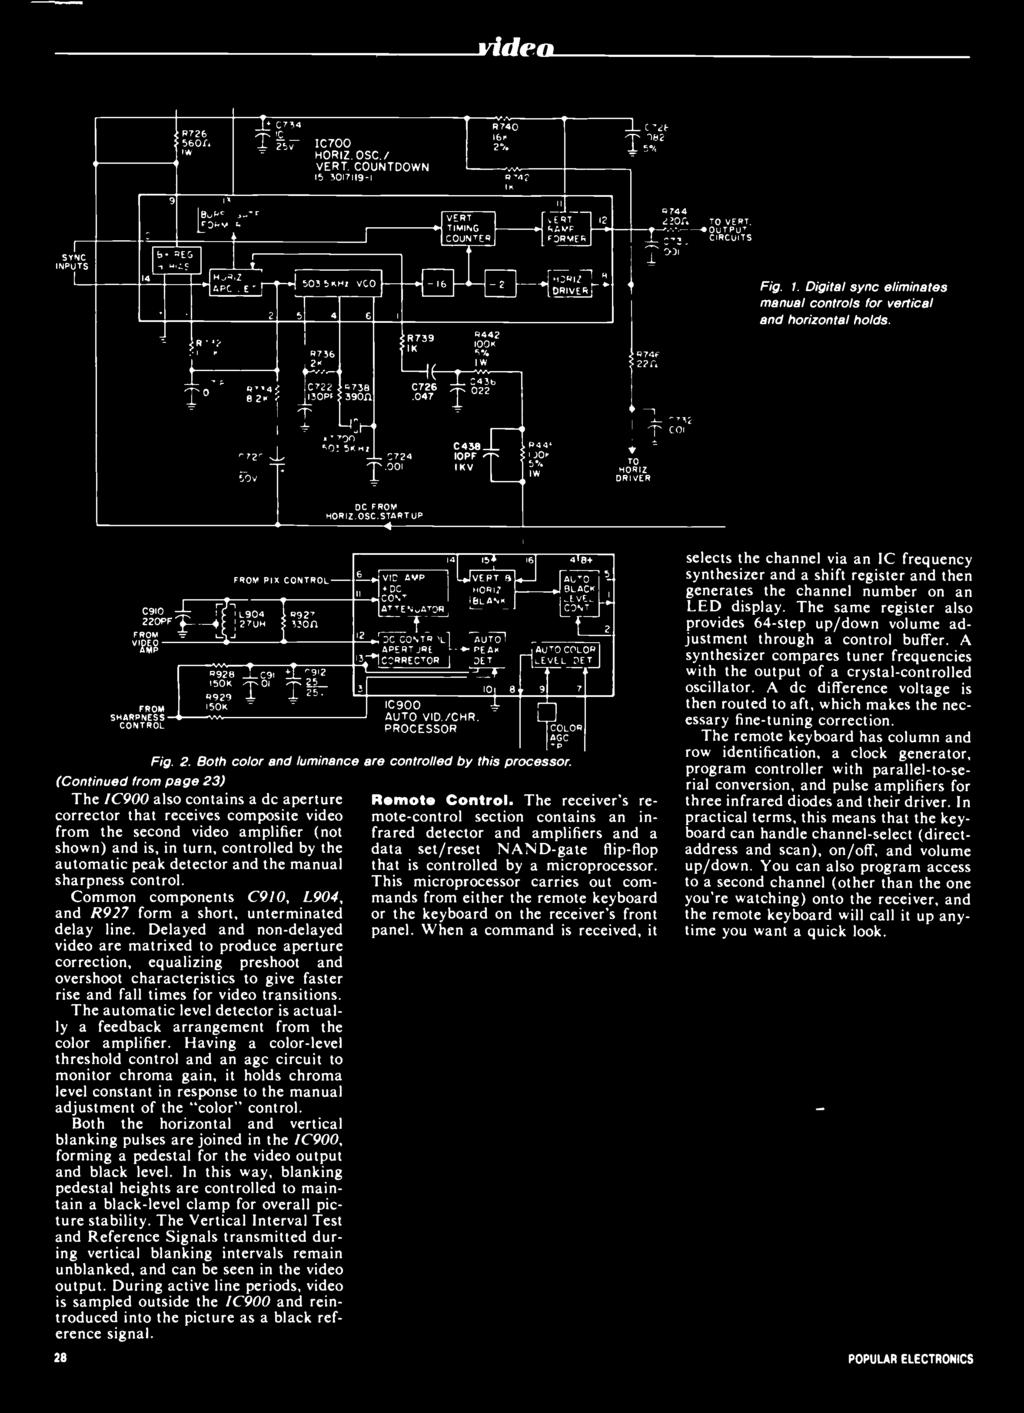 Coniesg Worlds Largest Selling Electronics Magazine May 1982 1 Pdf Simple Bounceless Switch Using Cd4049 Electronic Circuits Ramp Former Hdri718 Driverr 674e R 221 To Horiz Driver 8744 220 C